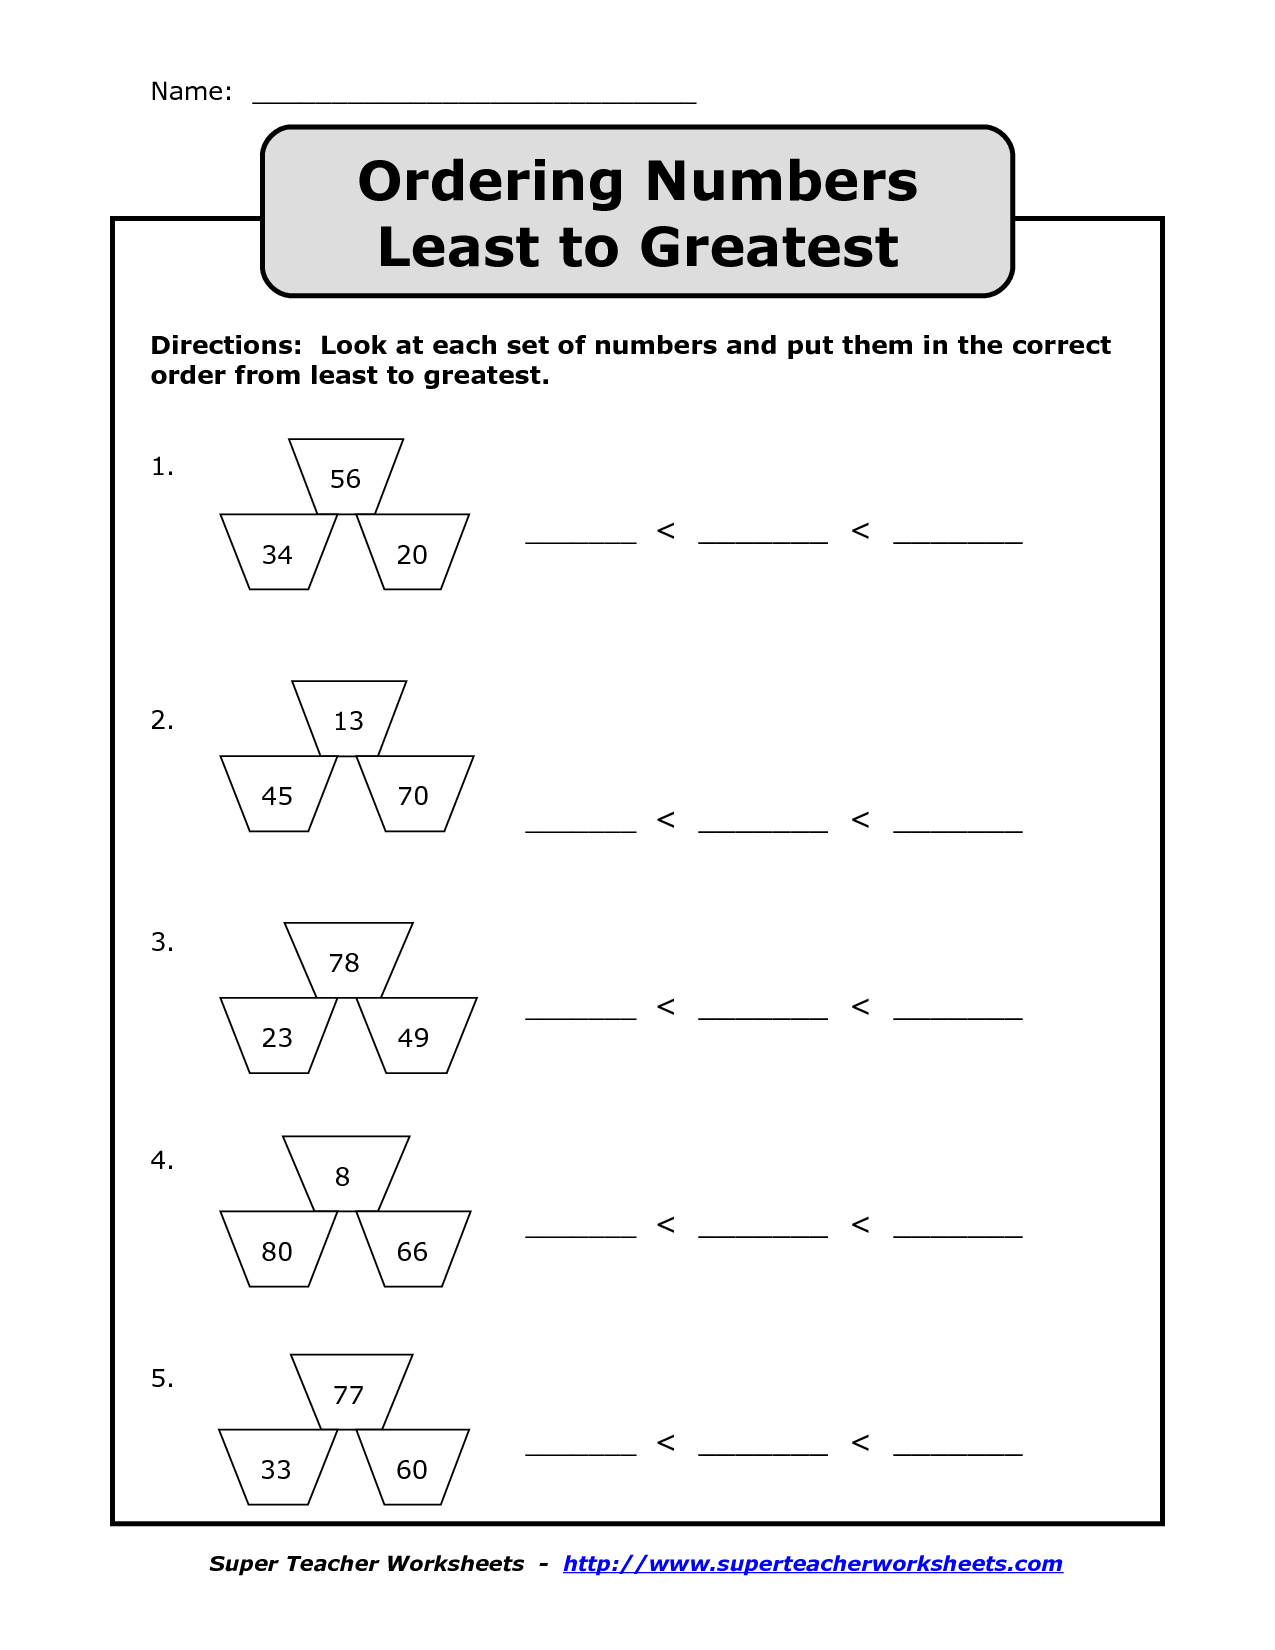 Worksheet On Ordering Fractions From Least To Greatest